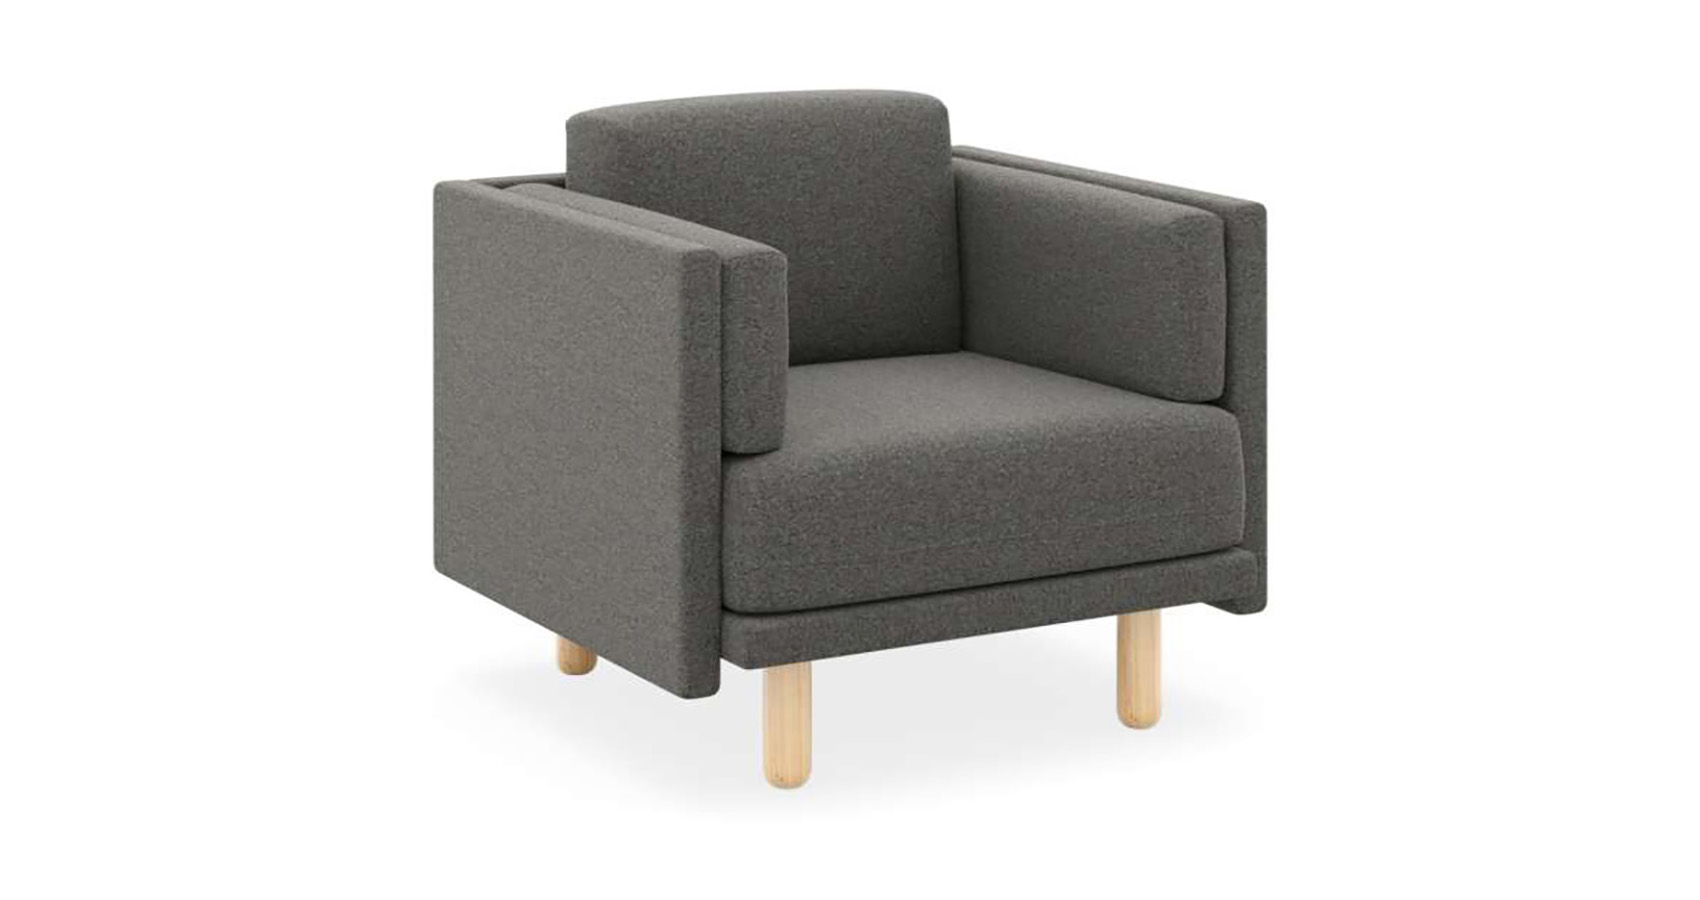 Benj Low 1 Seater Charcoal FV